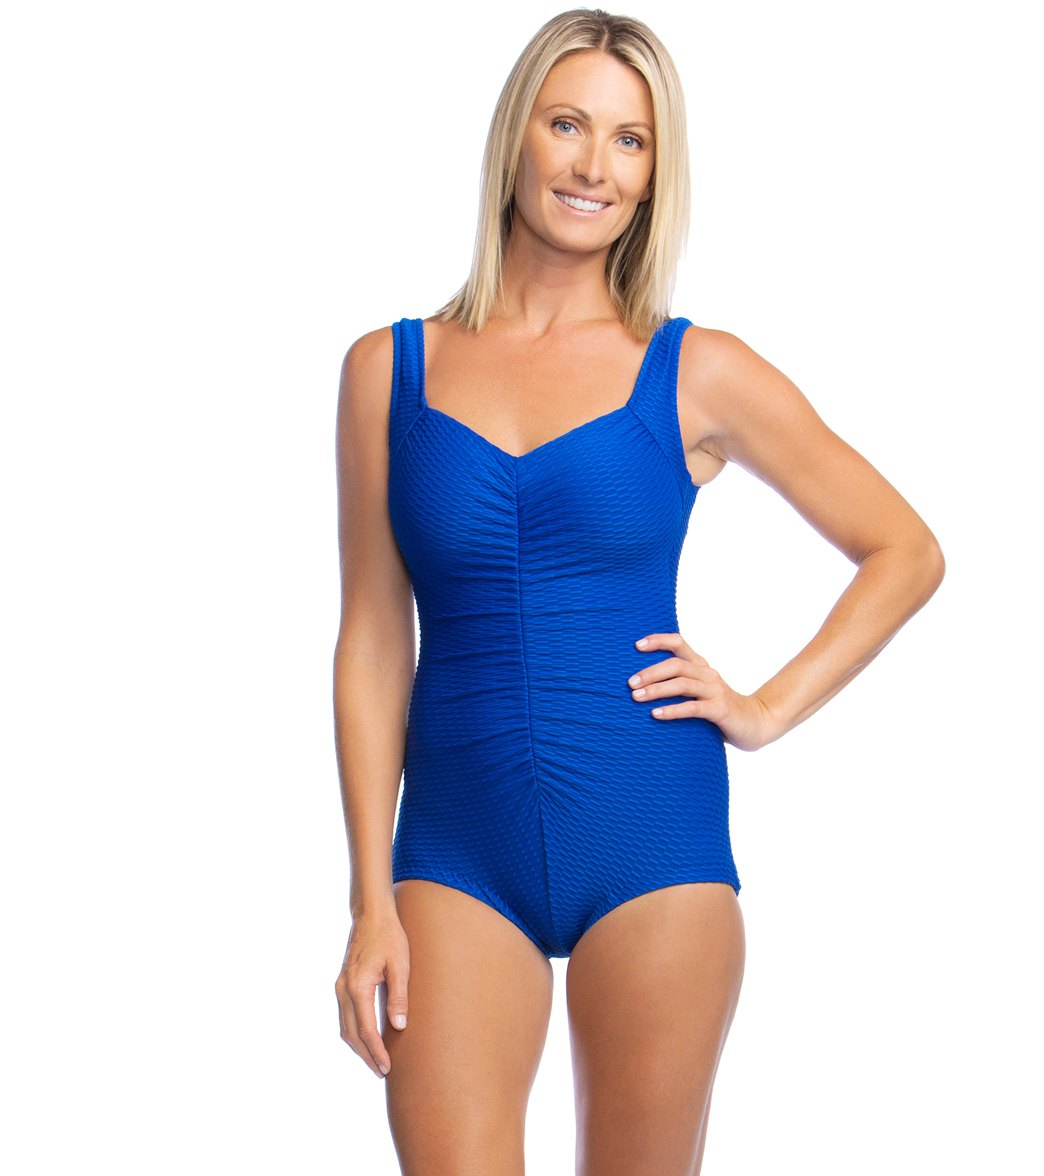 7ee6555eec67b Maxine Chlorine Resistant Shirred Girl Leg One Piece Swimsuit at  SwimOutlet.com - Free Shipping